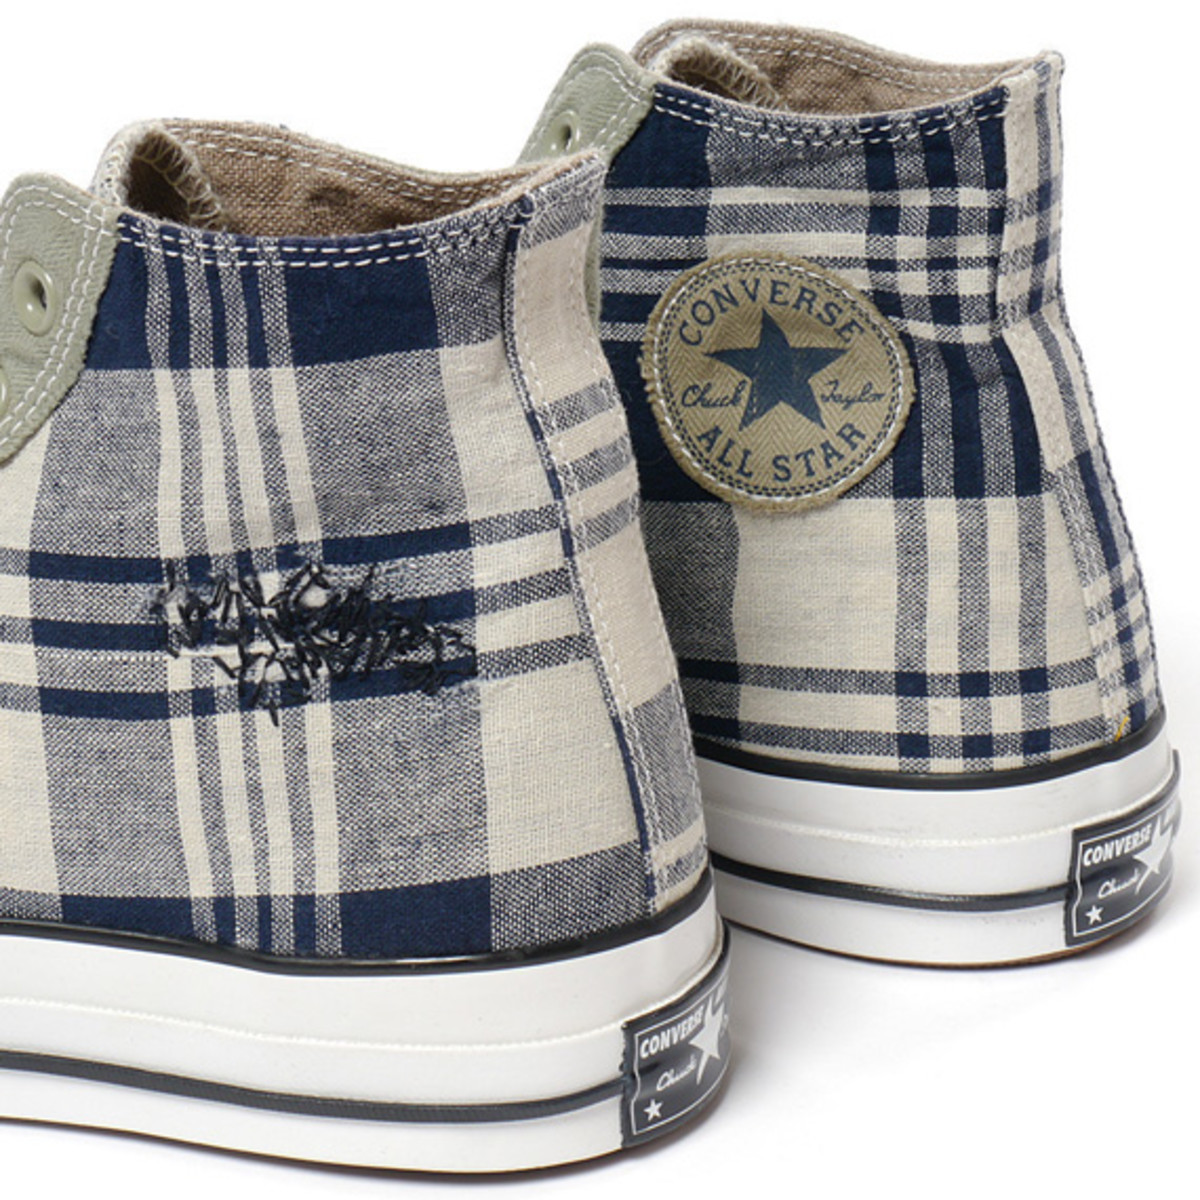 dr-romanelli-x-converse-first-string-chuck-taylor-all-star-1970s-boro-available-now-haven-01